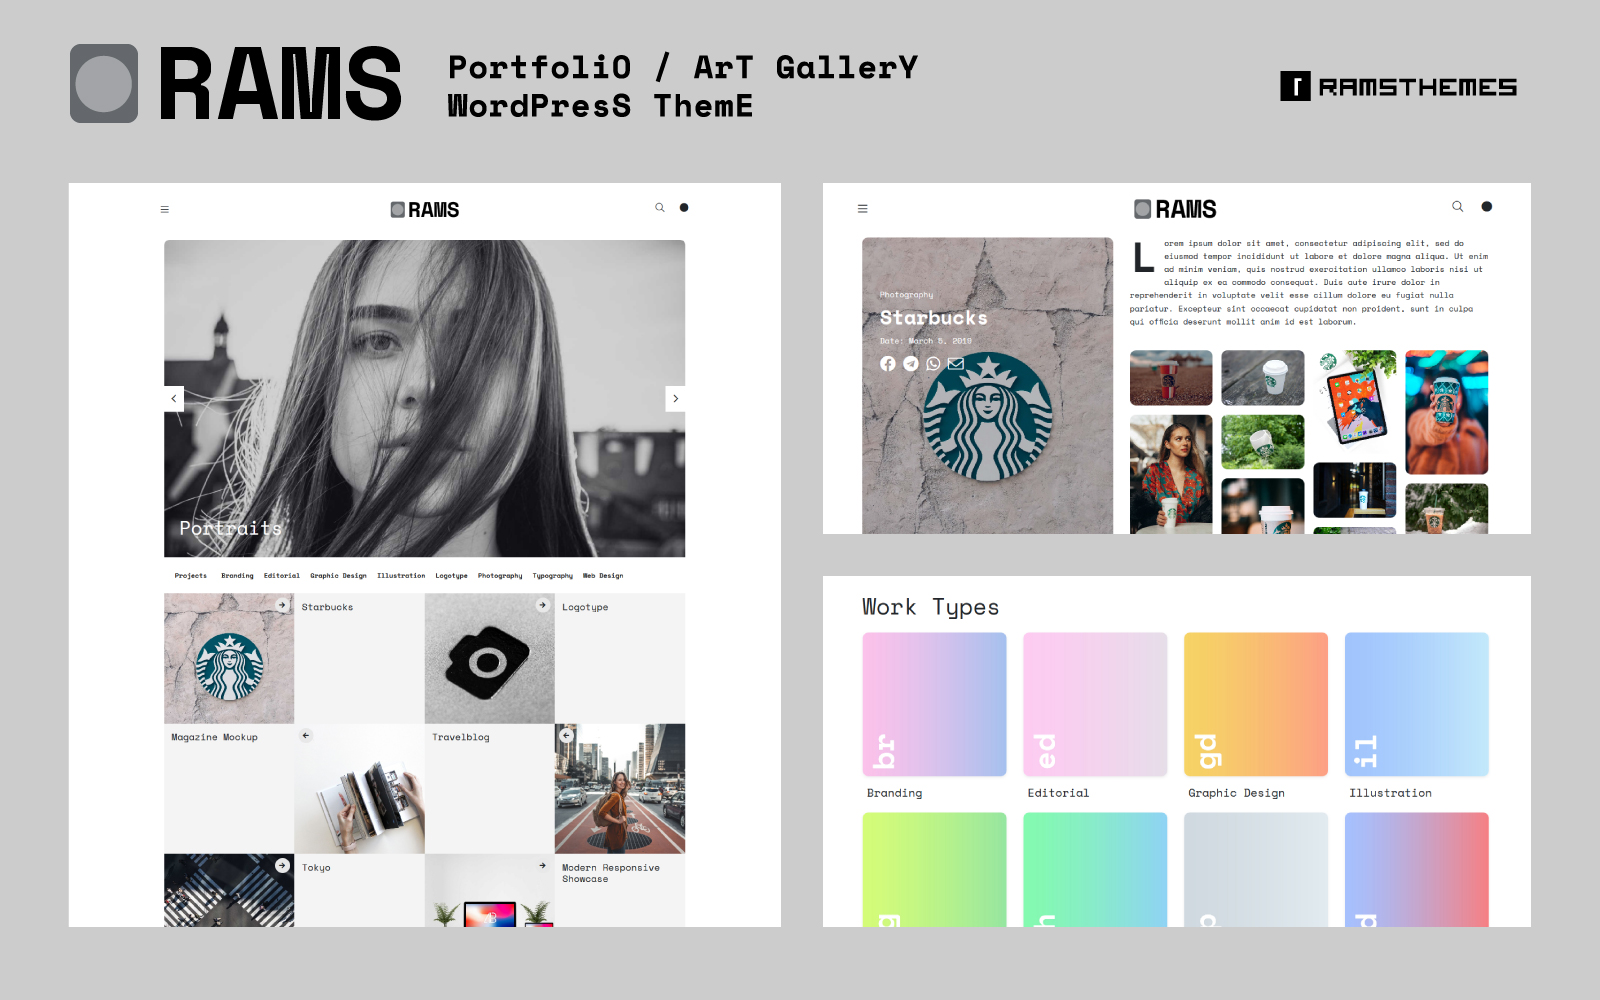 RAMS - Portfolio and Art Gallery WordPress Theme